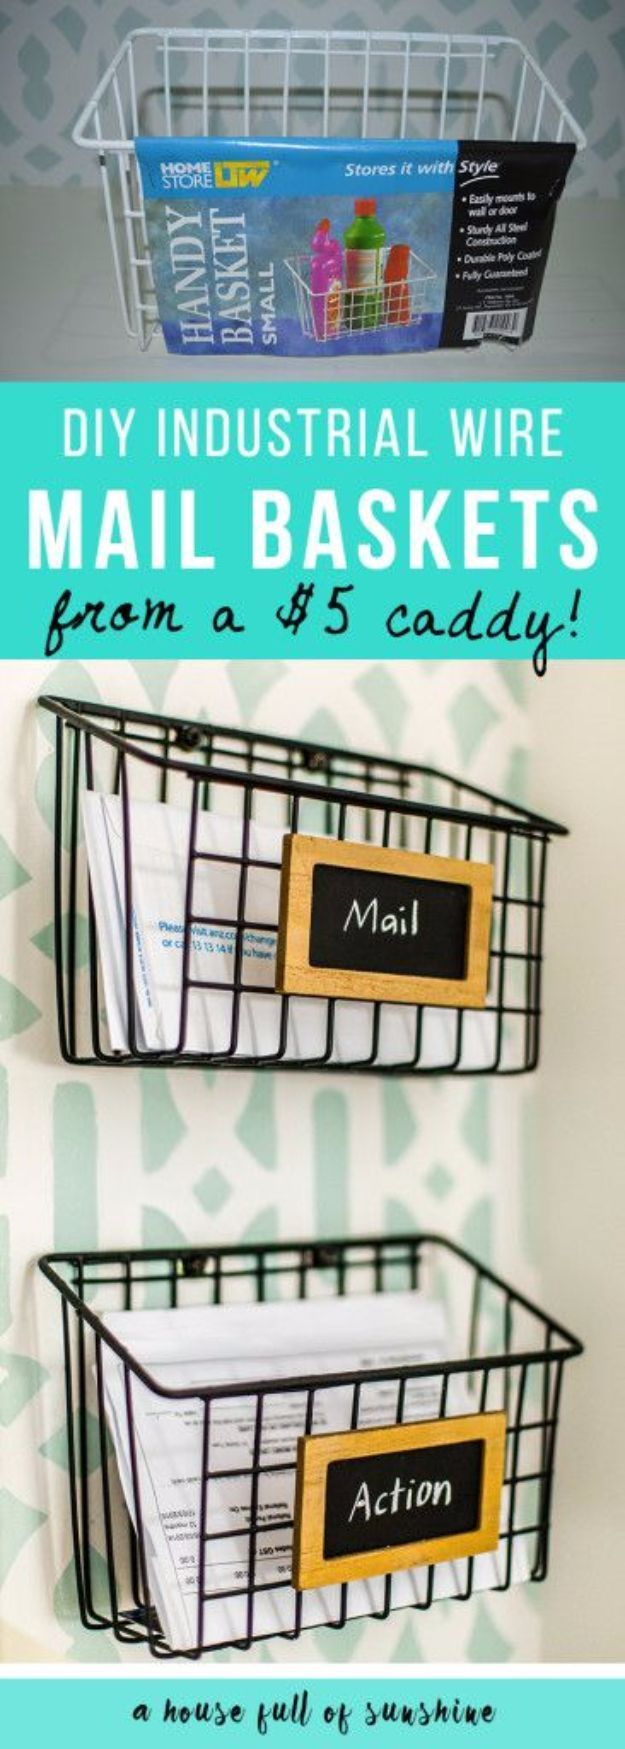 25 Best Mail Sorter Ideas On Pinterest Industrial Baskets Office Makeover And Diy Home